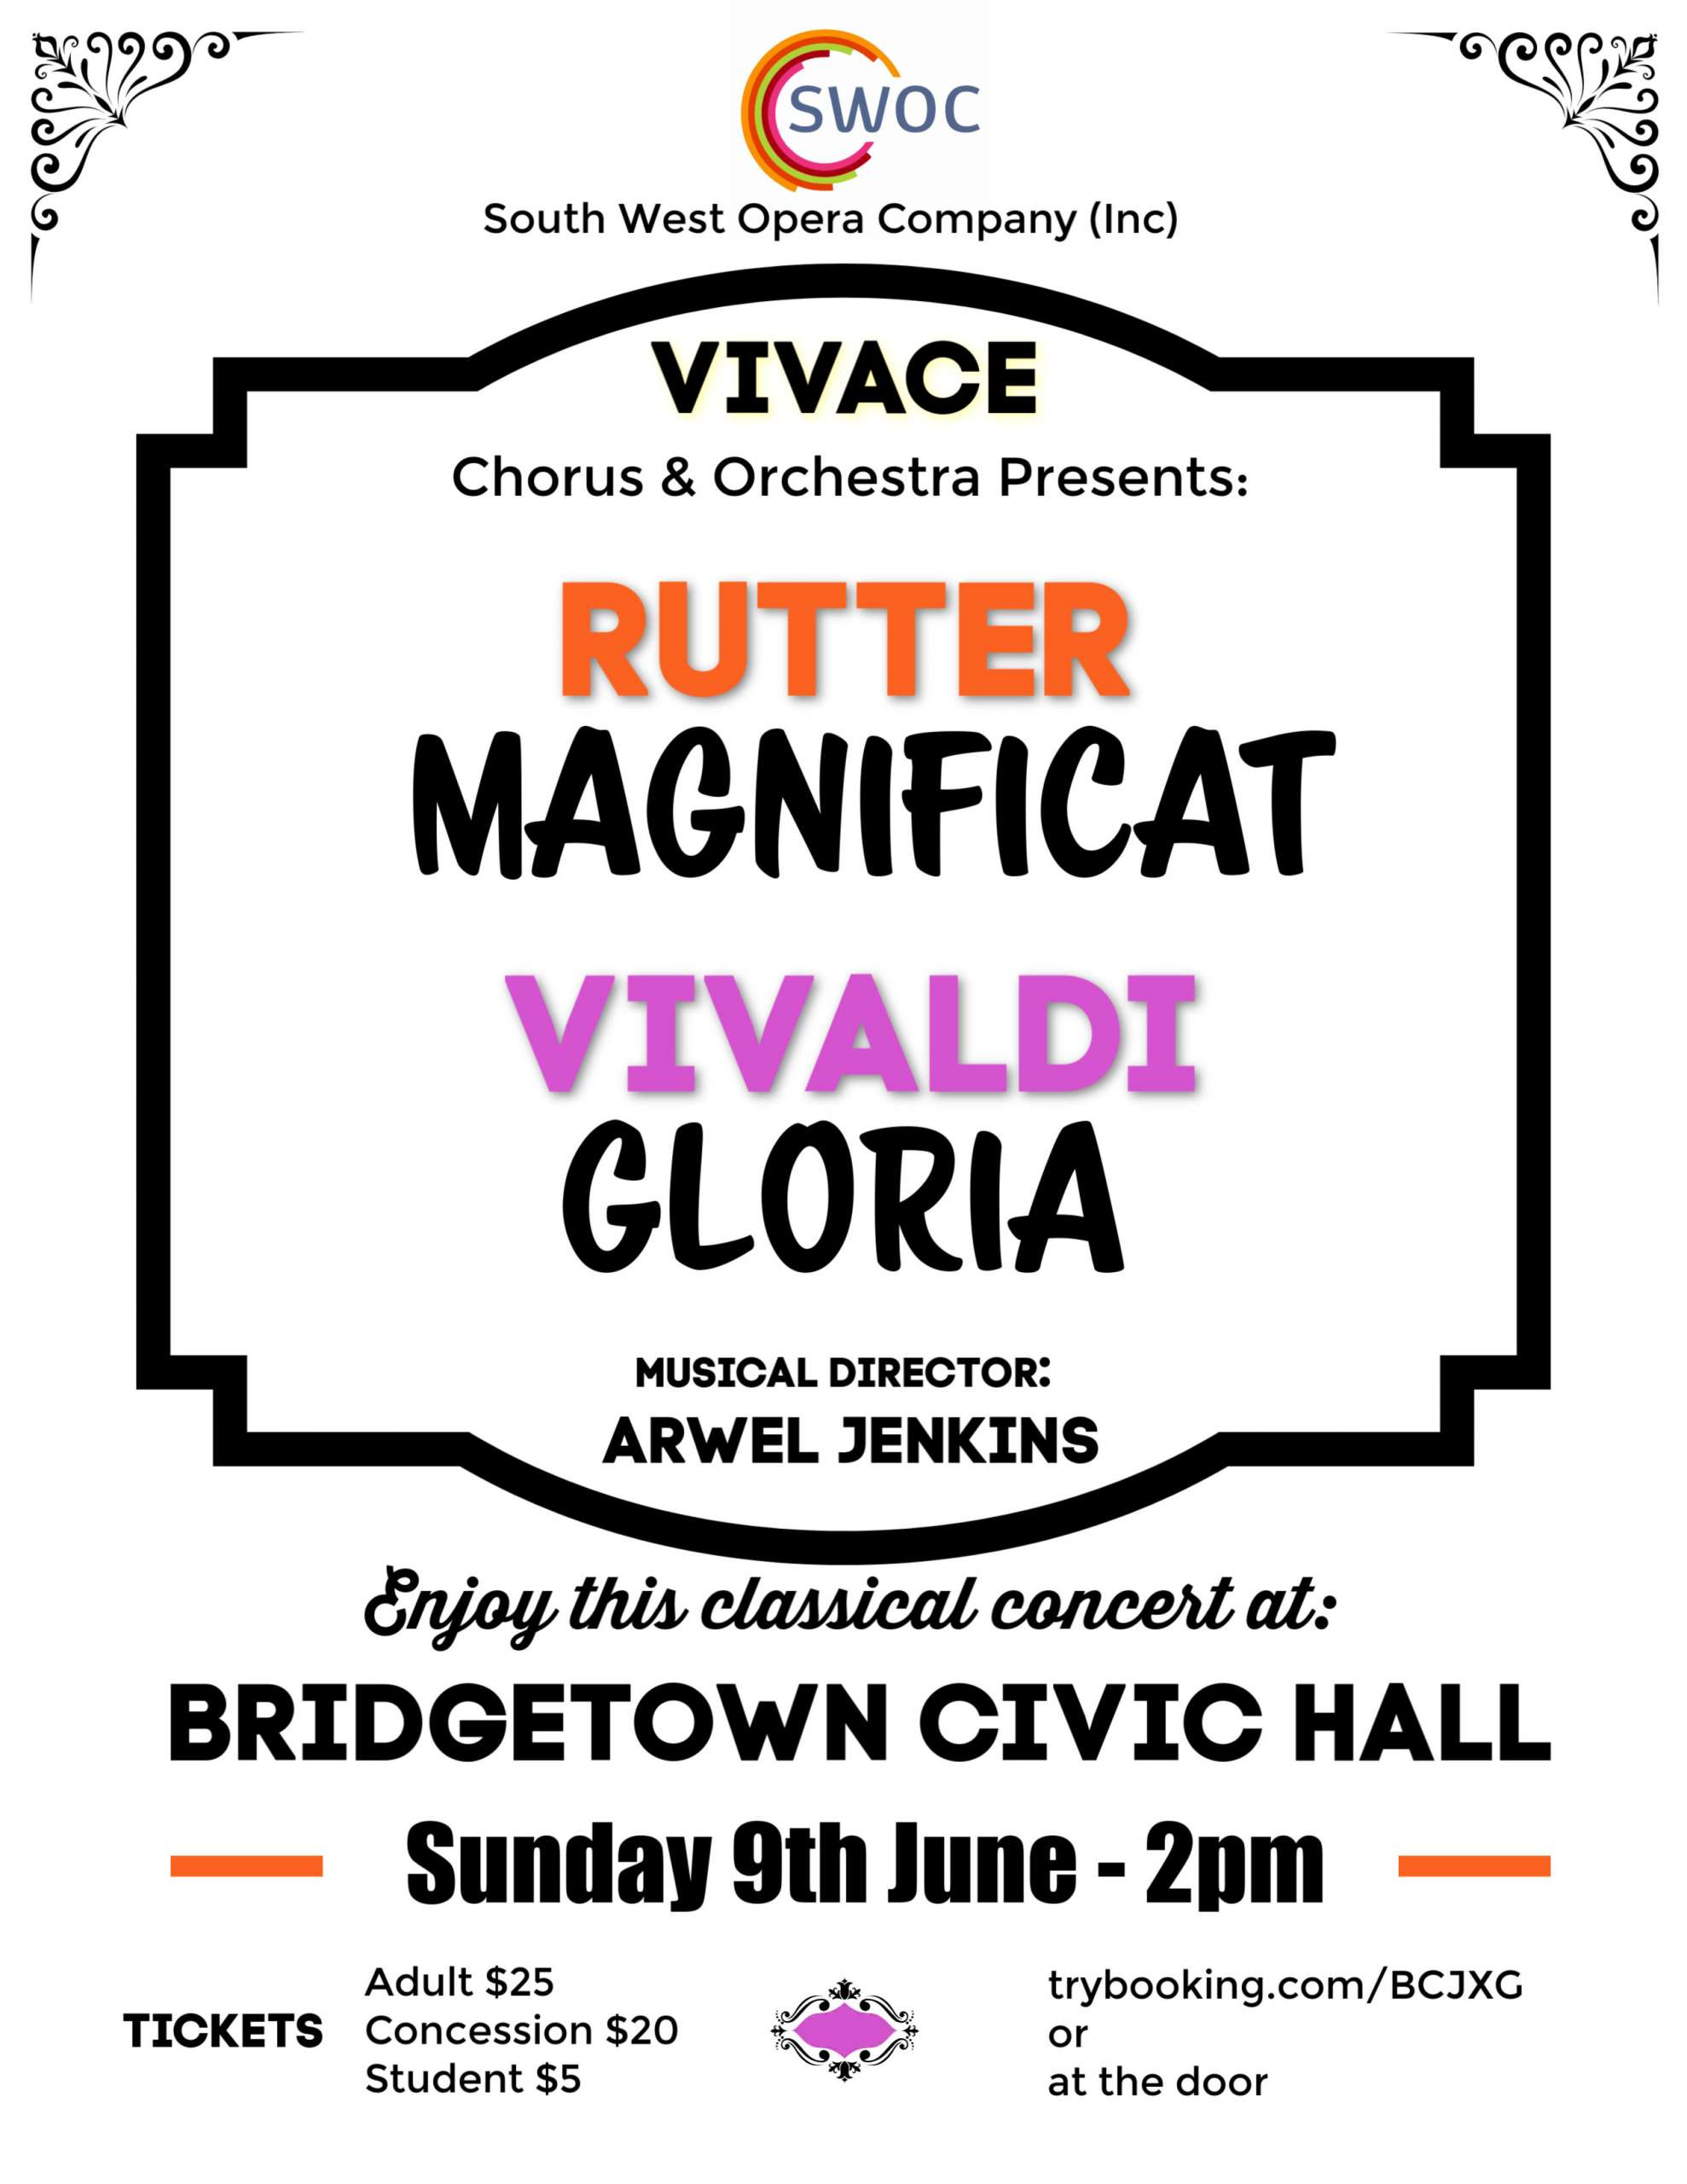 Vivace and Rutter - Bridgetown